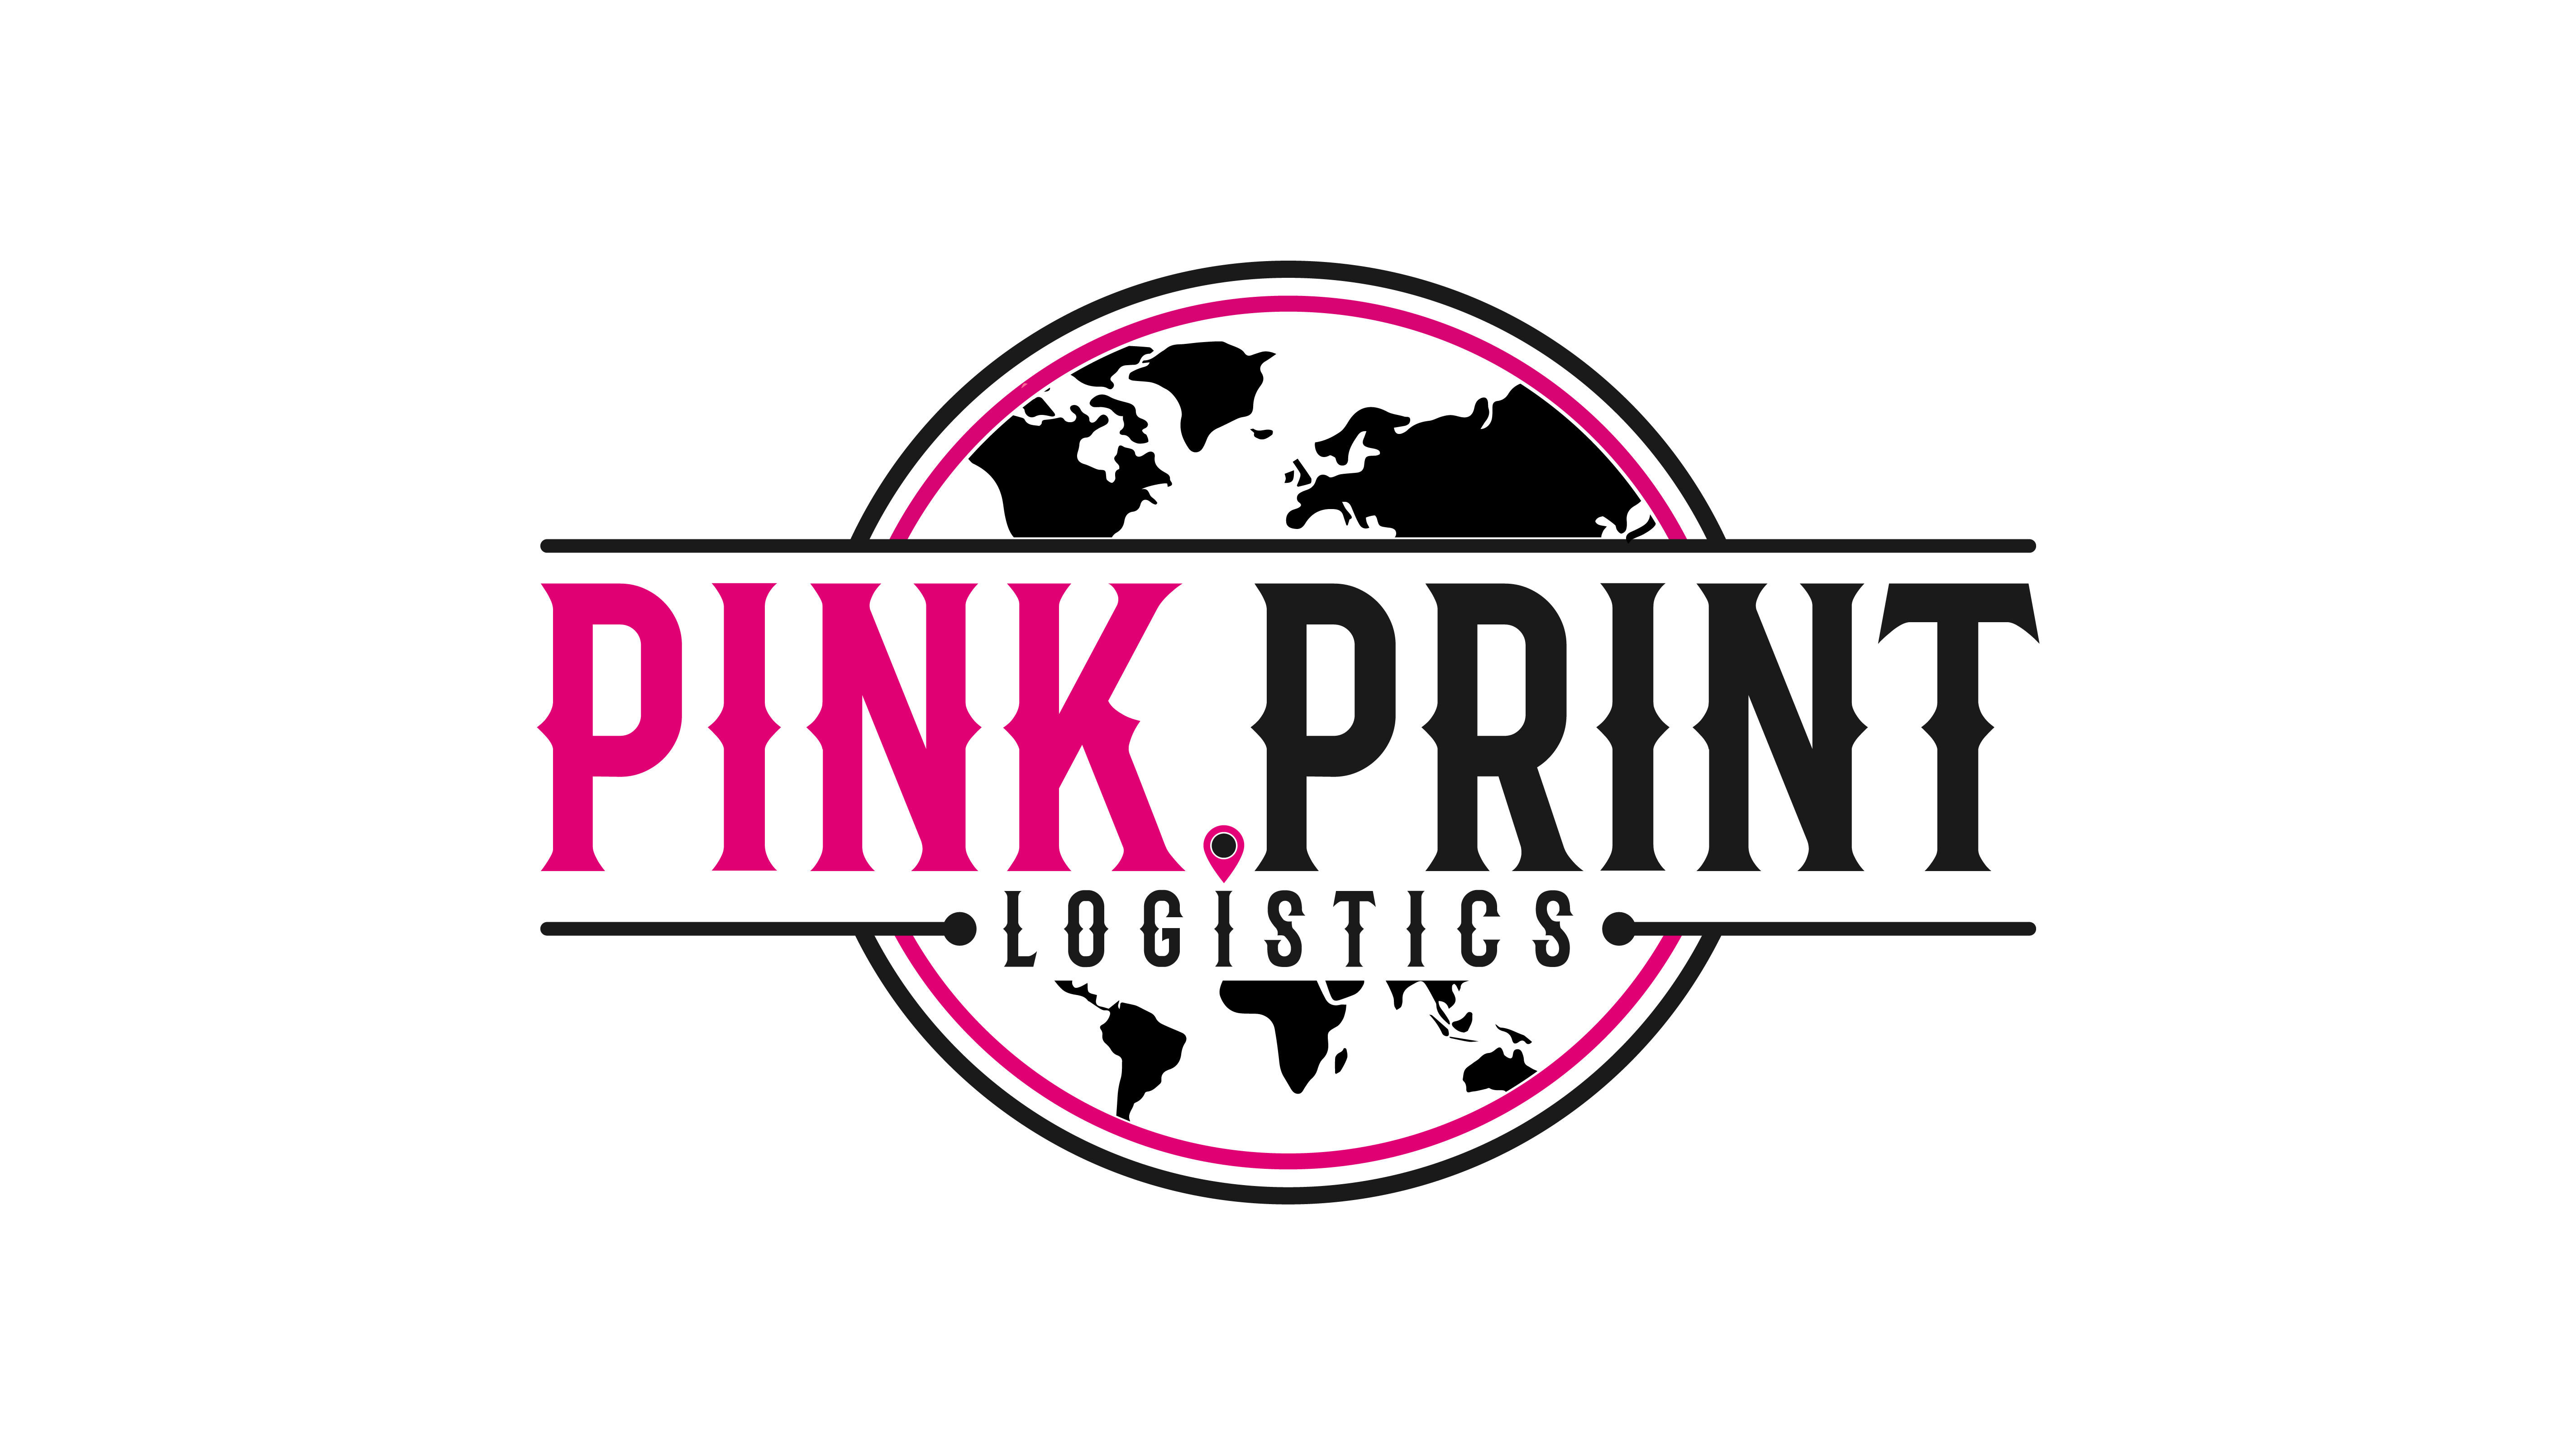 Pink Print Logistics Gears Up to Take Over America's Logistics Industry With Wide Range of Delivery Services